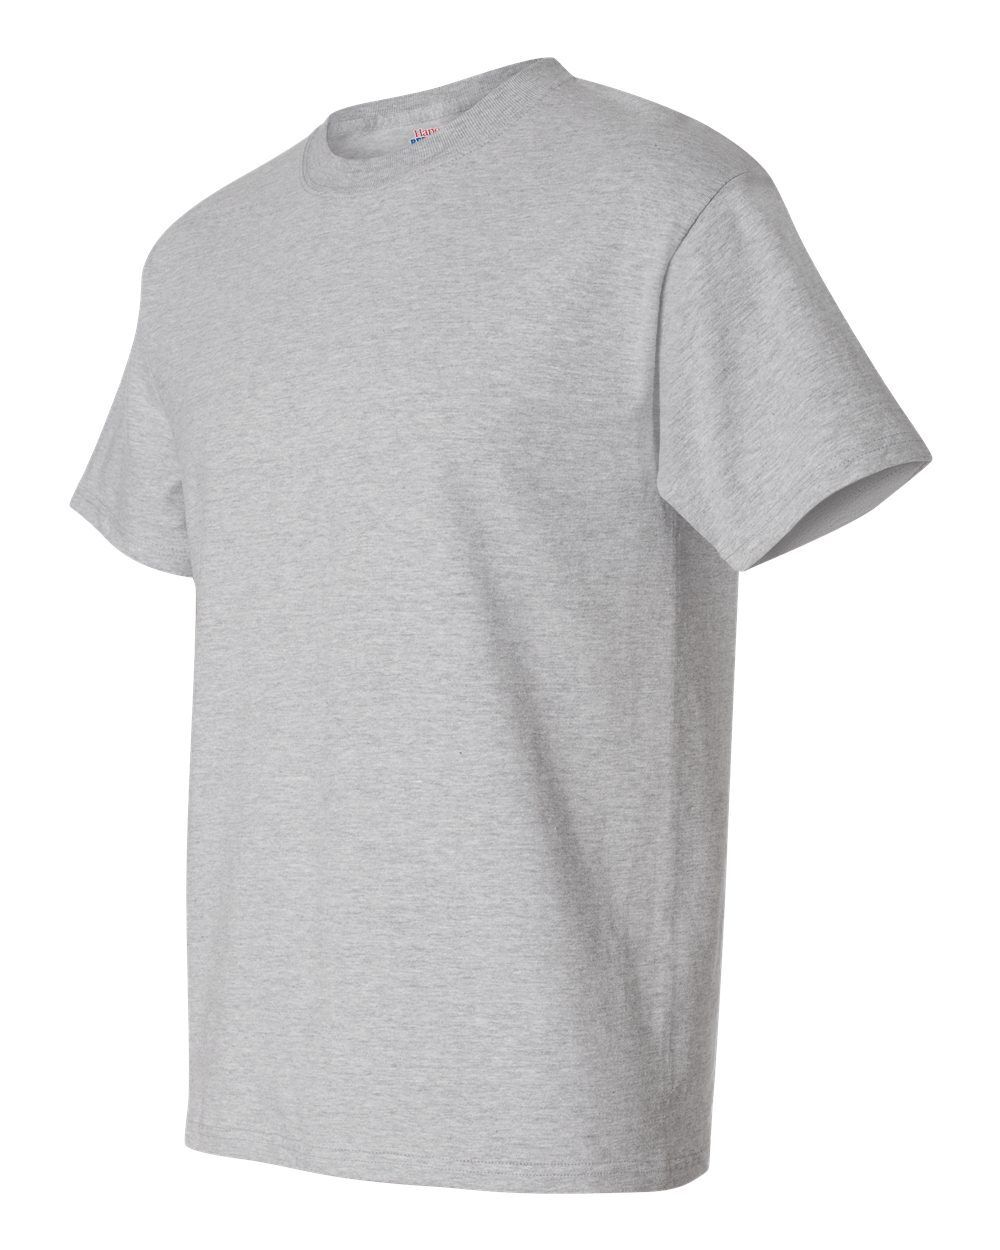 Hanes beefy t tall tagless t shirt 100 cotton 518t mens for Mens 2xlt short sleeve shirts